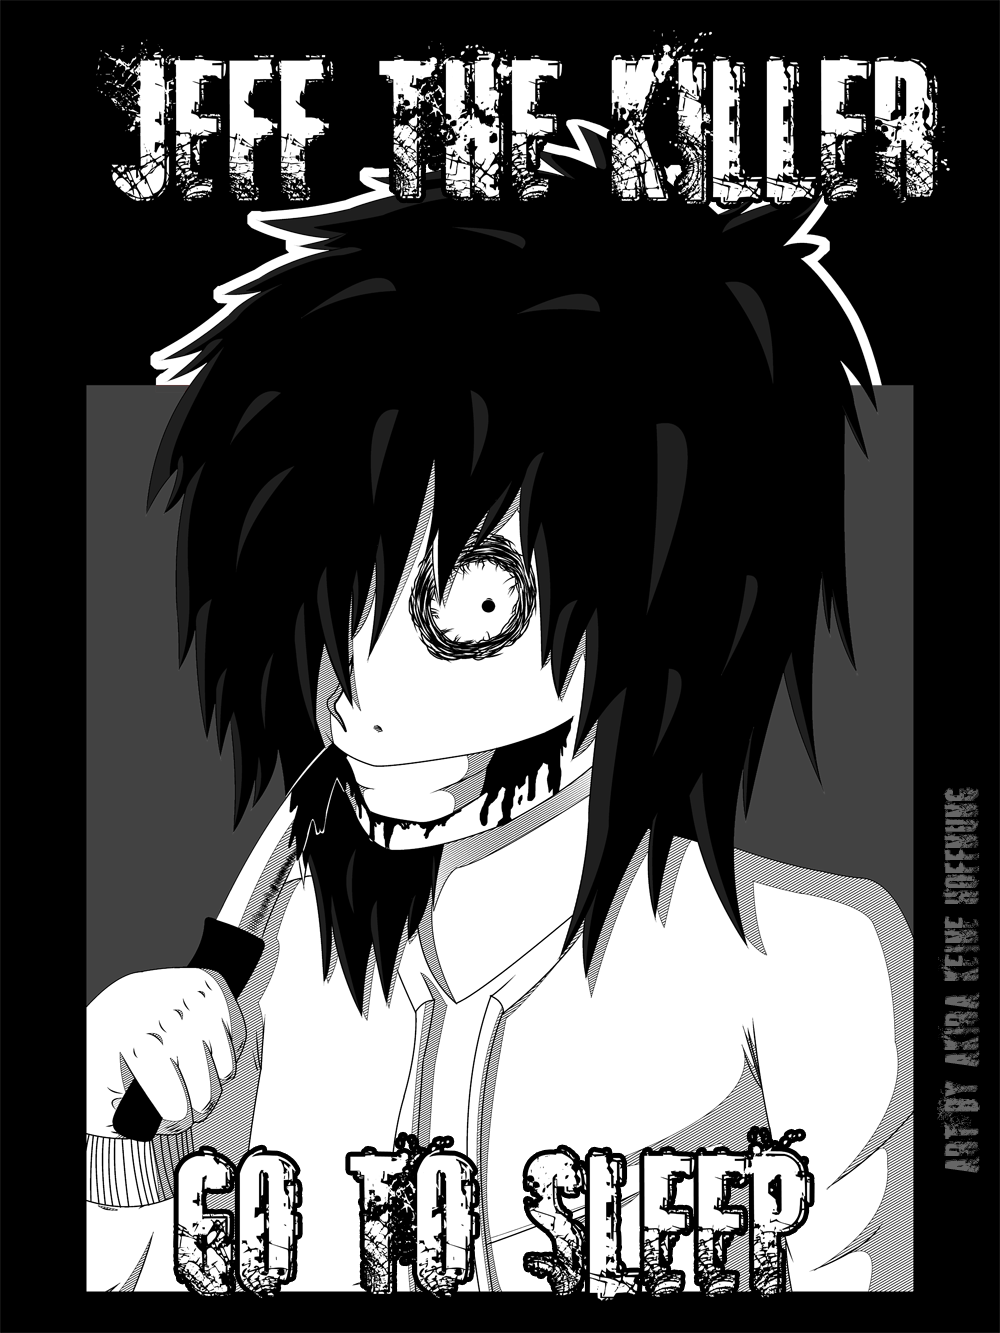 Jeff The Killer by Dye-Macabre